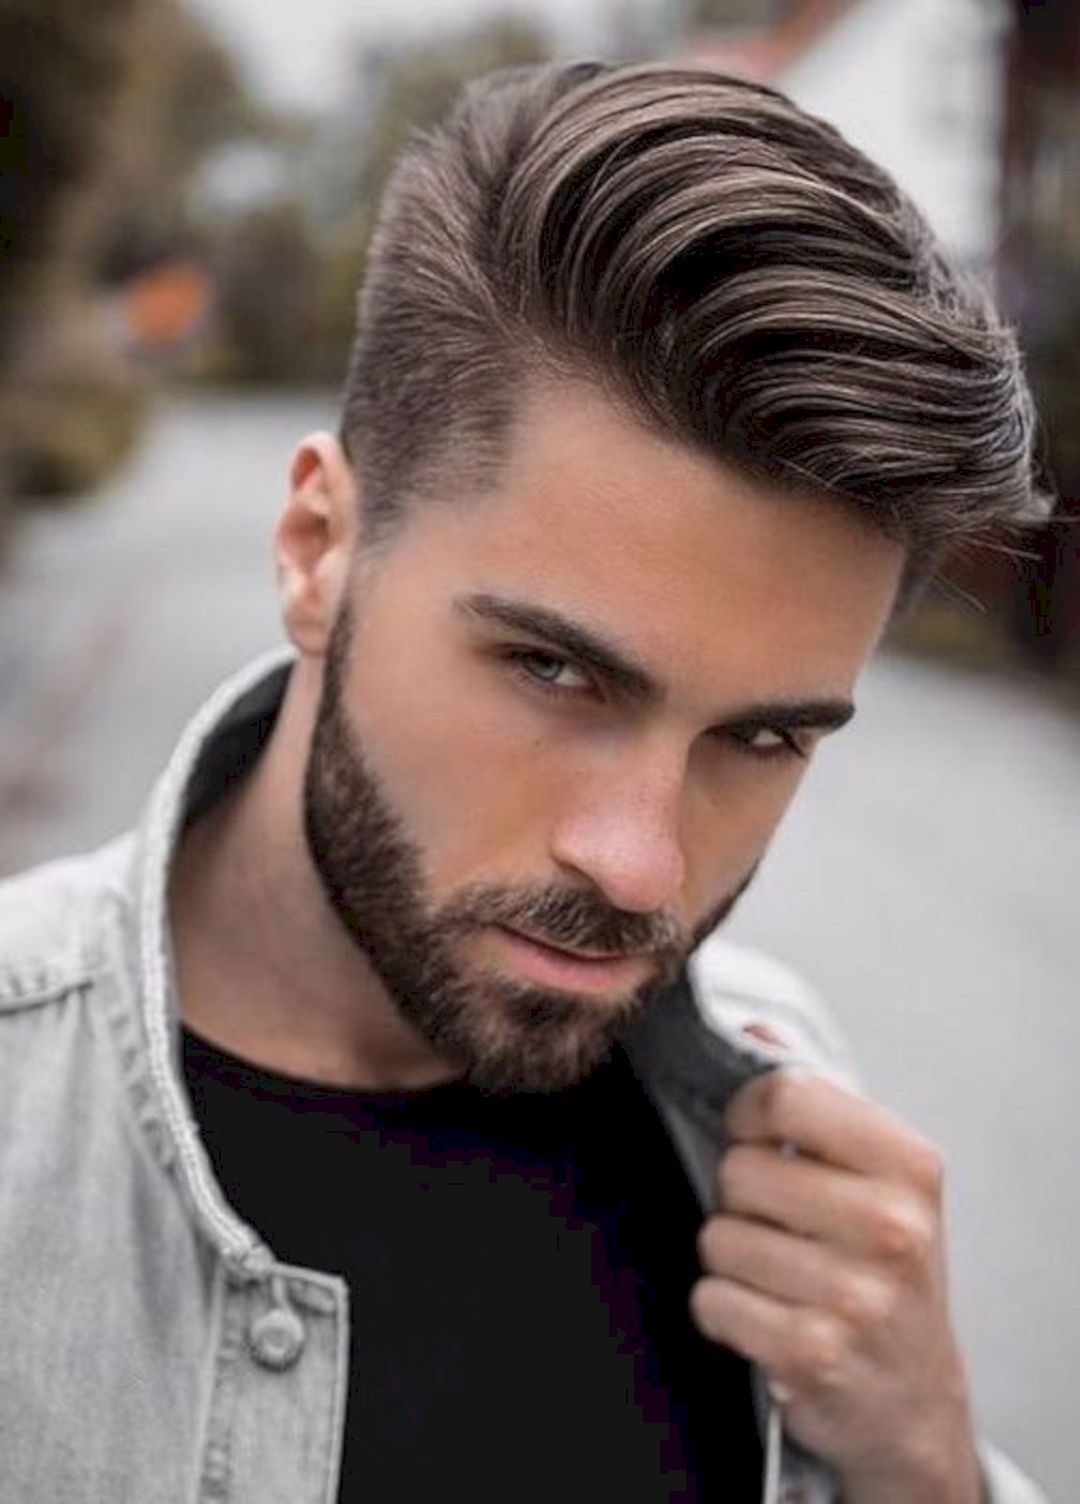 10 Best Dashing Men Hairstyle Ideas Who Can Inspire You Moodesto Undercut Hairstyles Pompadour Men Beard Hairstyle